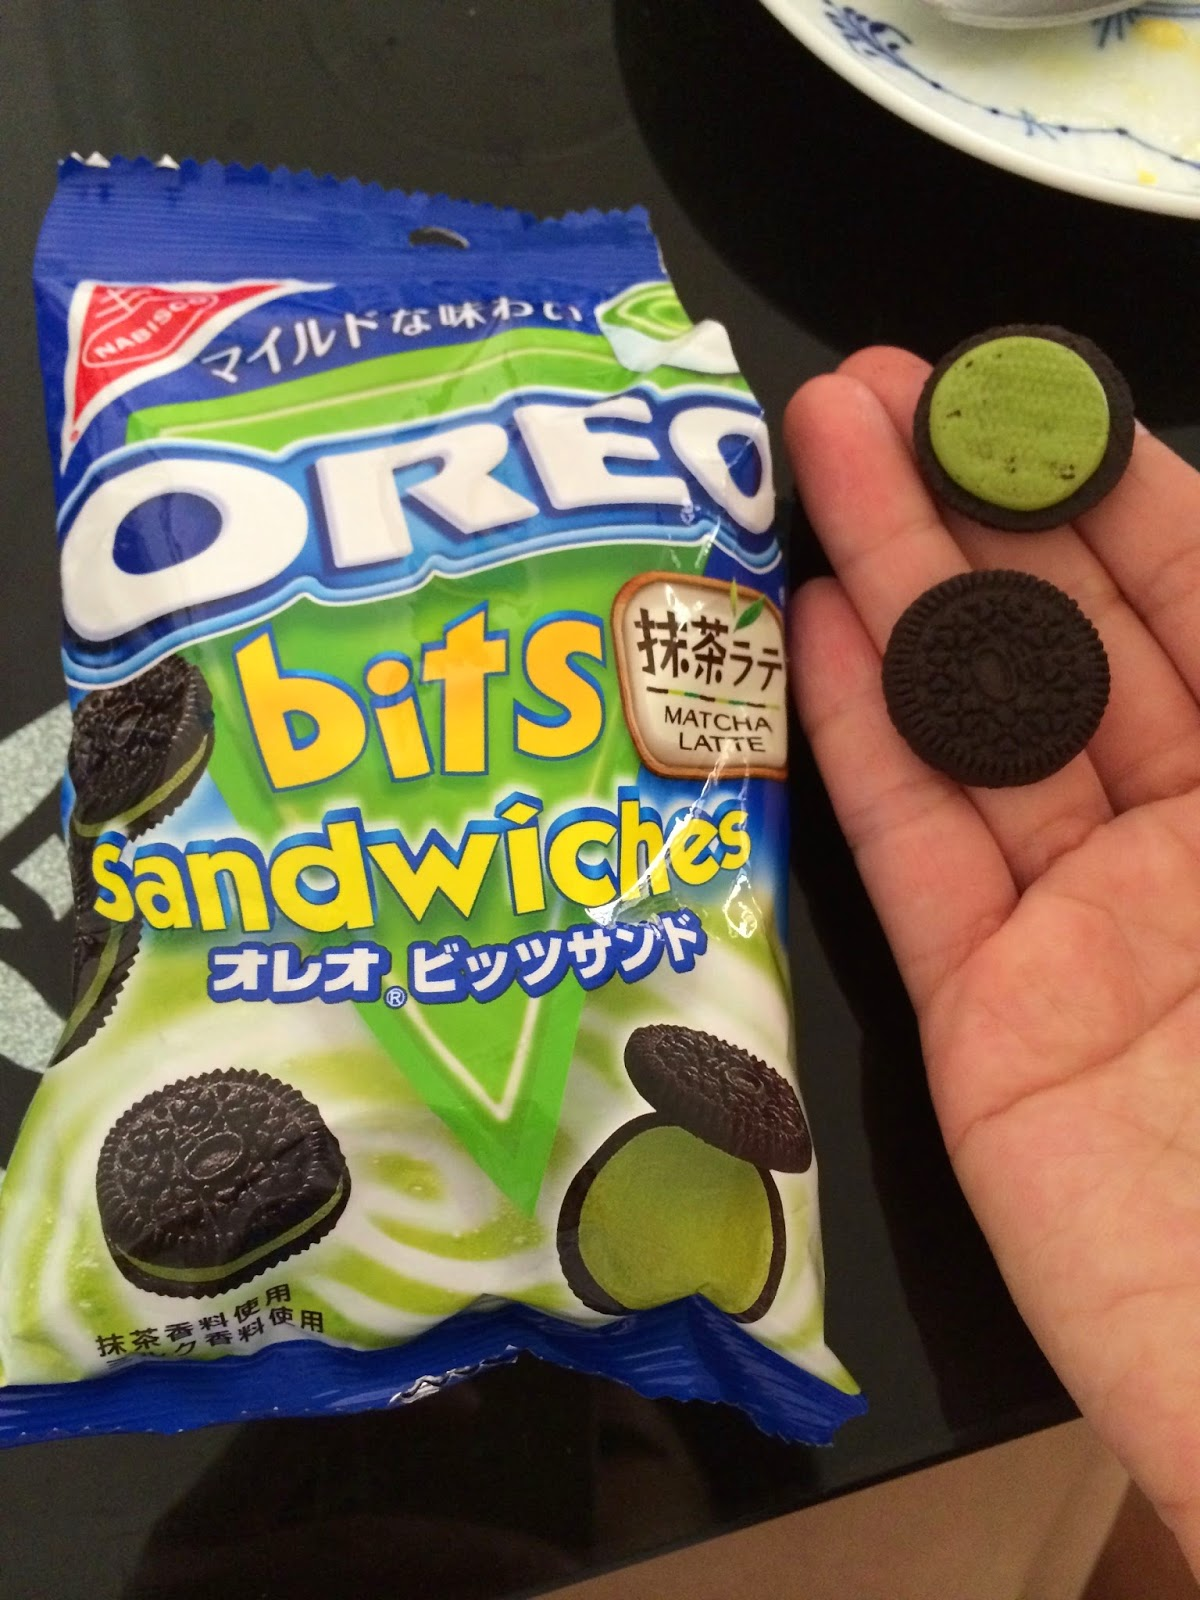 japanese matcha snack sweets japan oreo bits sandwiches latte